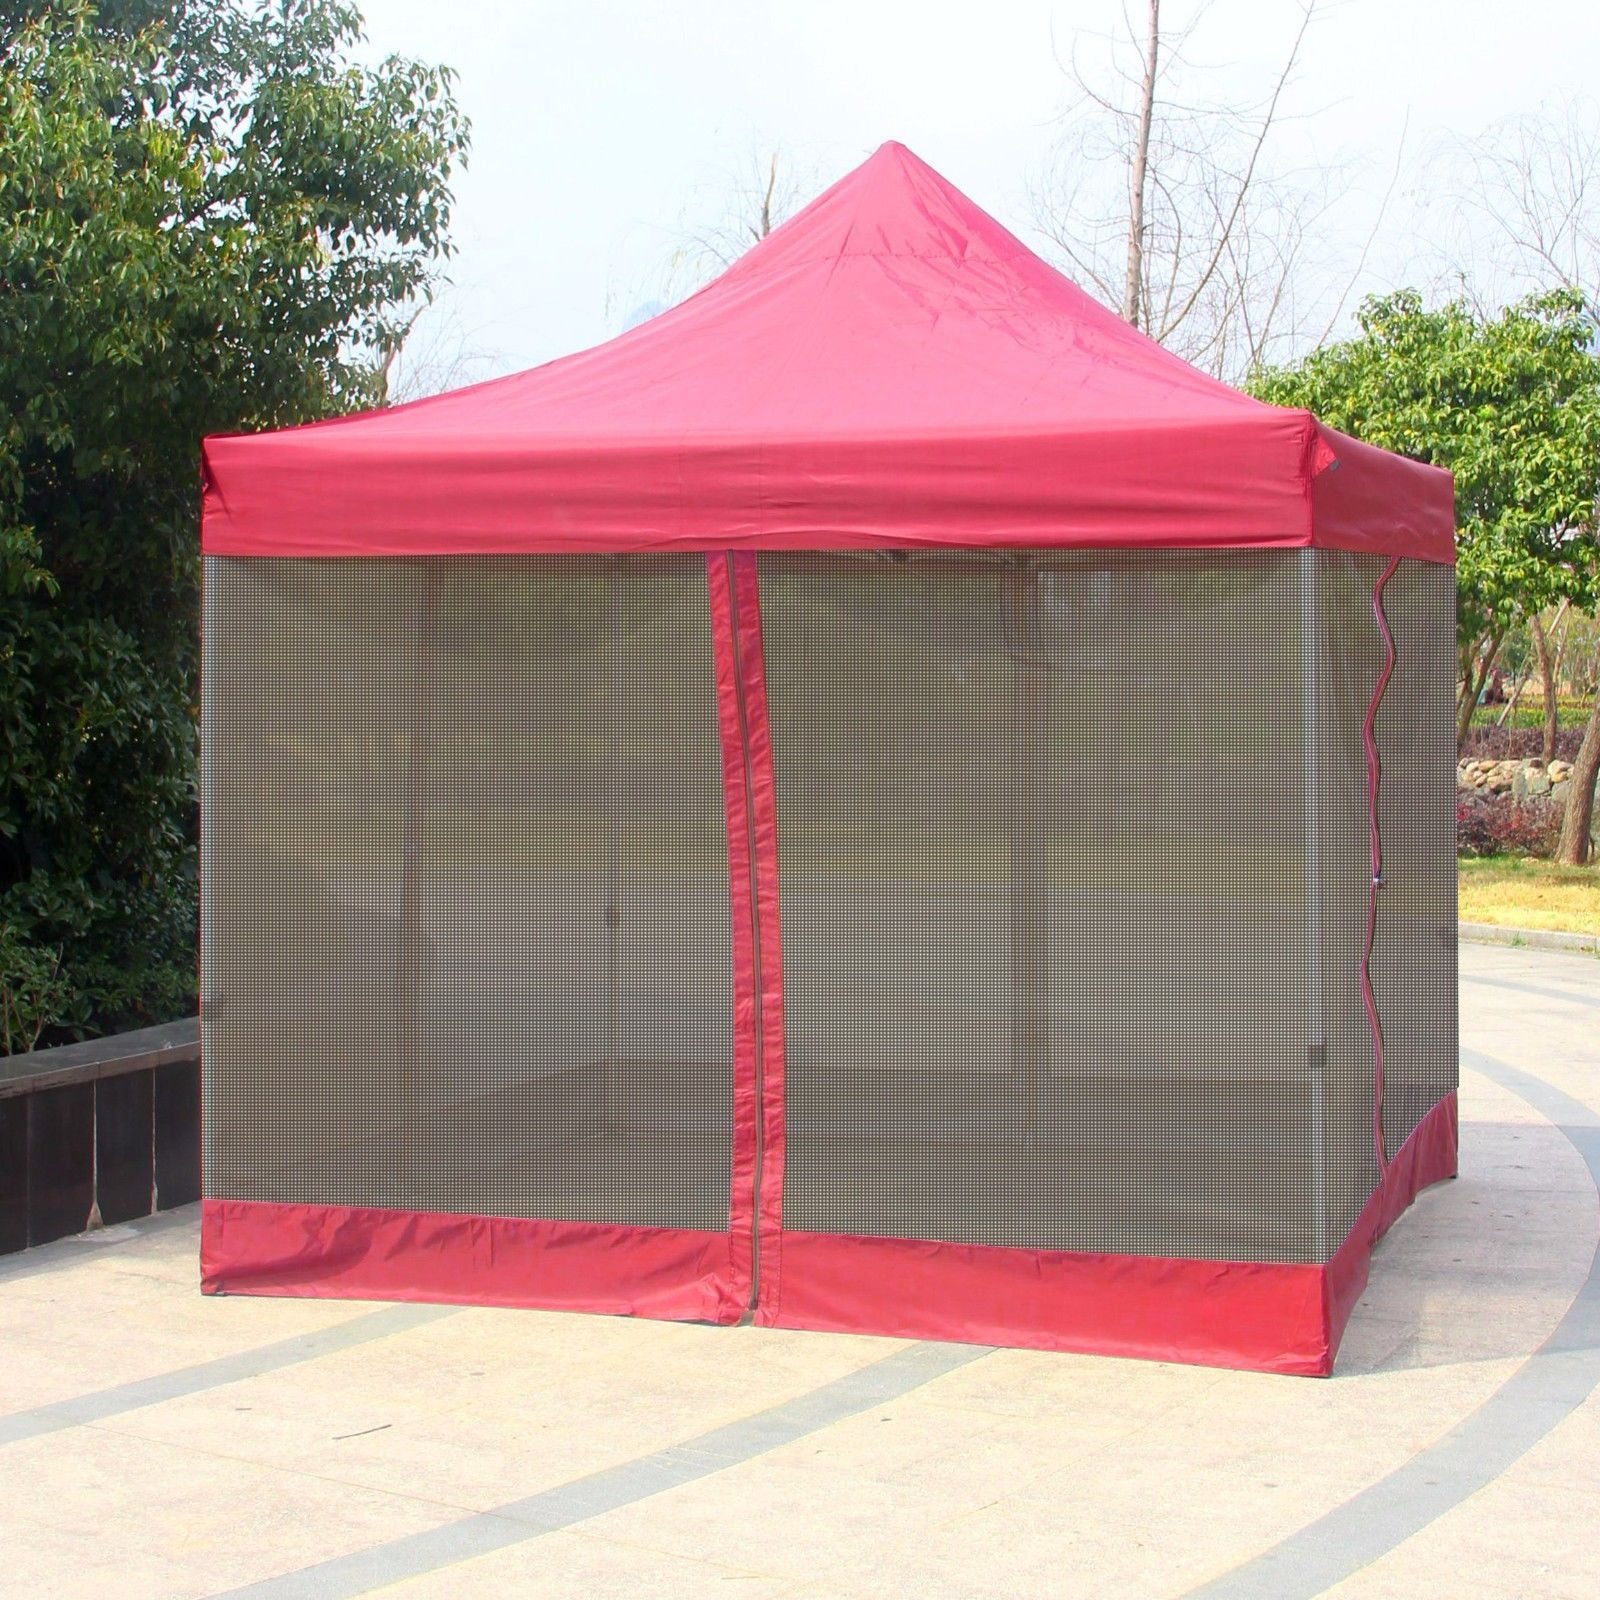 10' x 10' Gazebo Replacement Garden Outdoor Gazebo Canopy Mosquito Netting ONLY